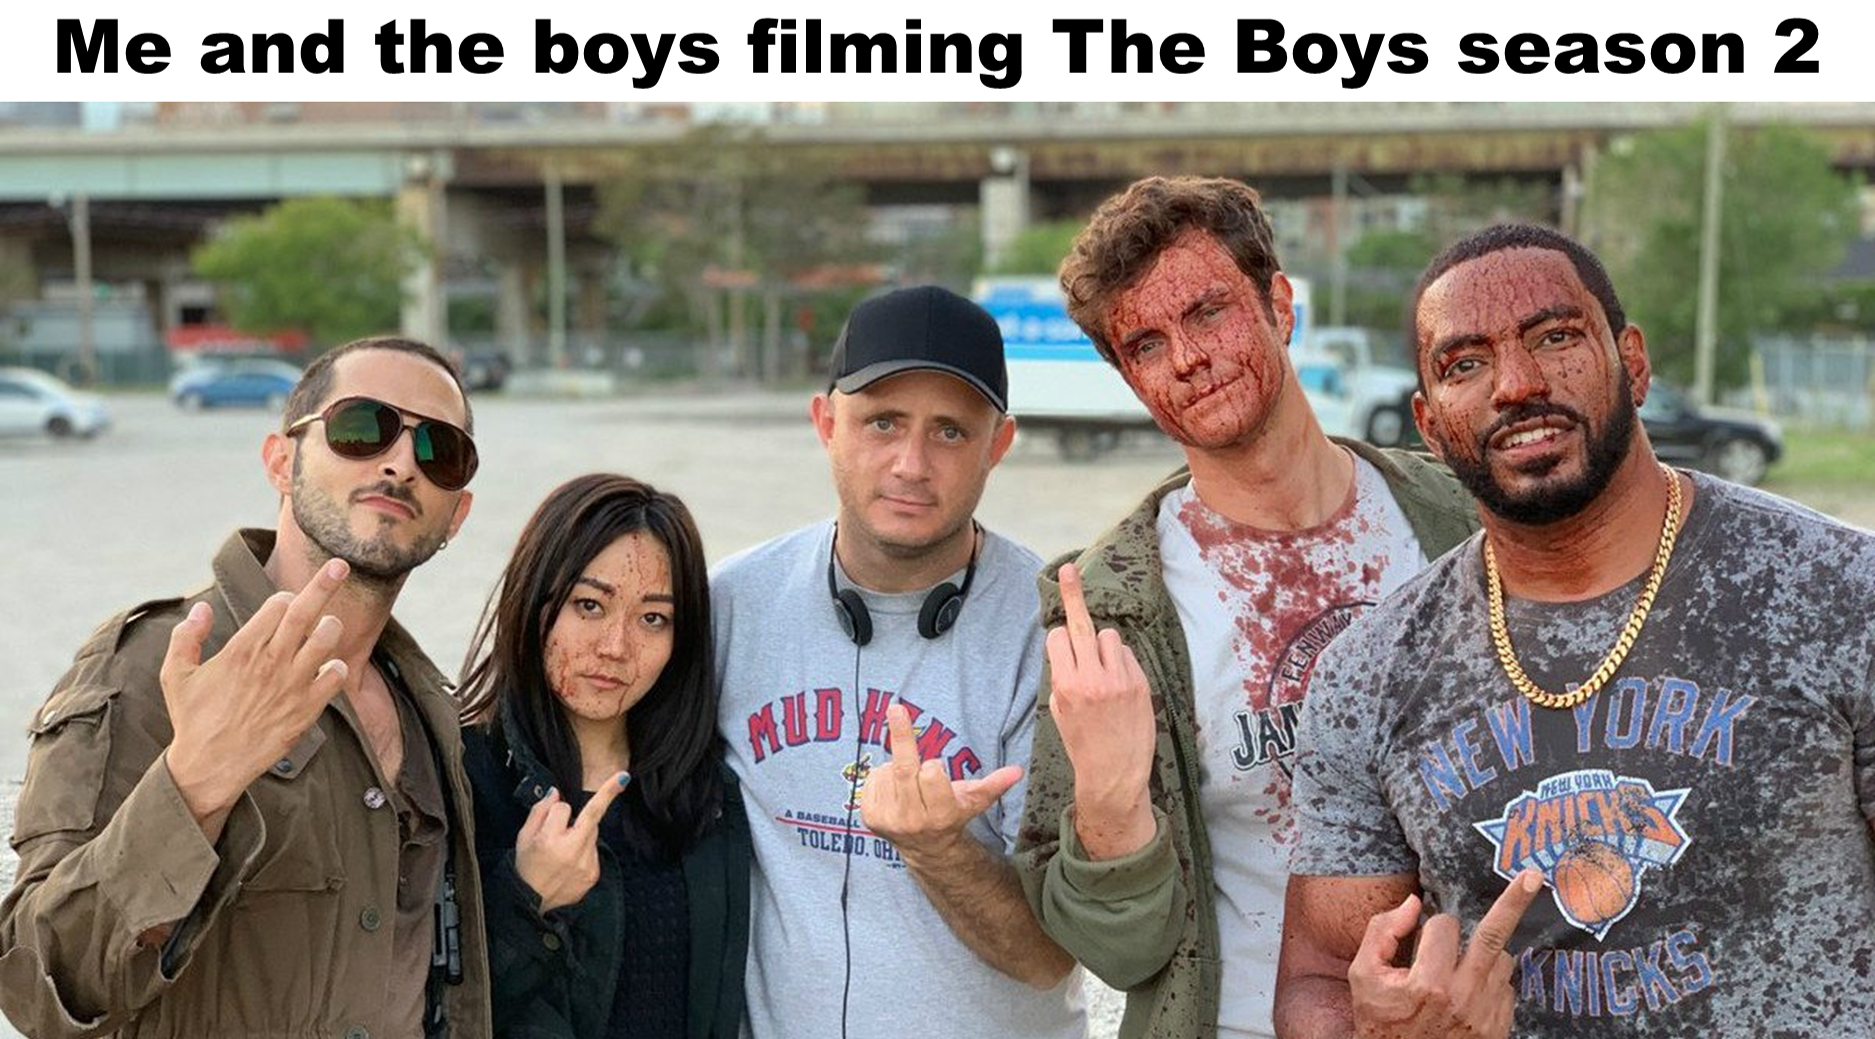 The Boys Filming The Boys Me And The Boys Know Your Meme